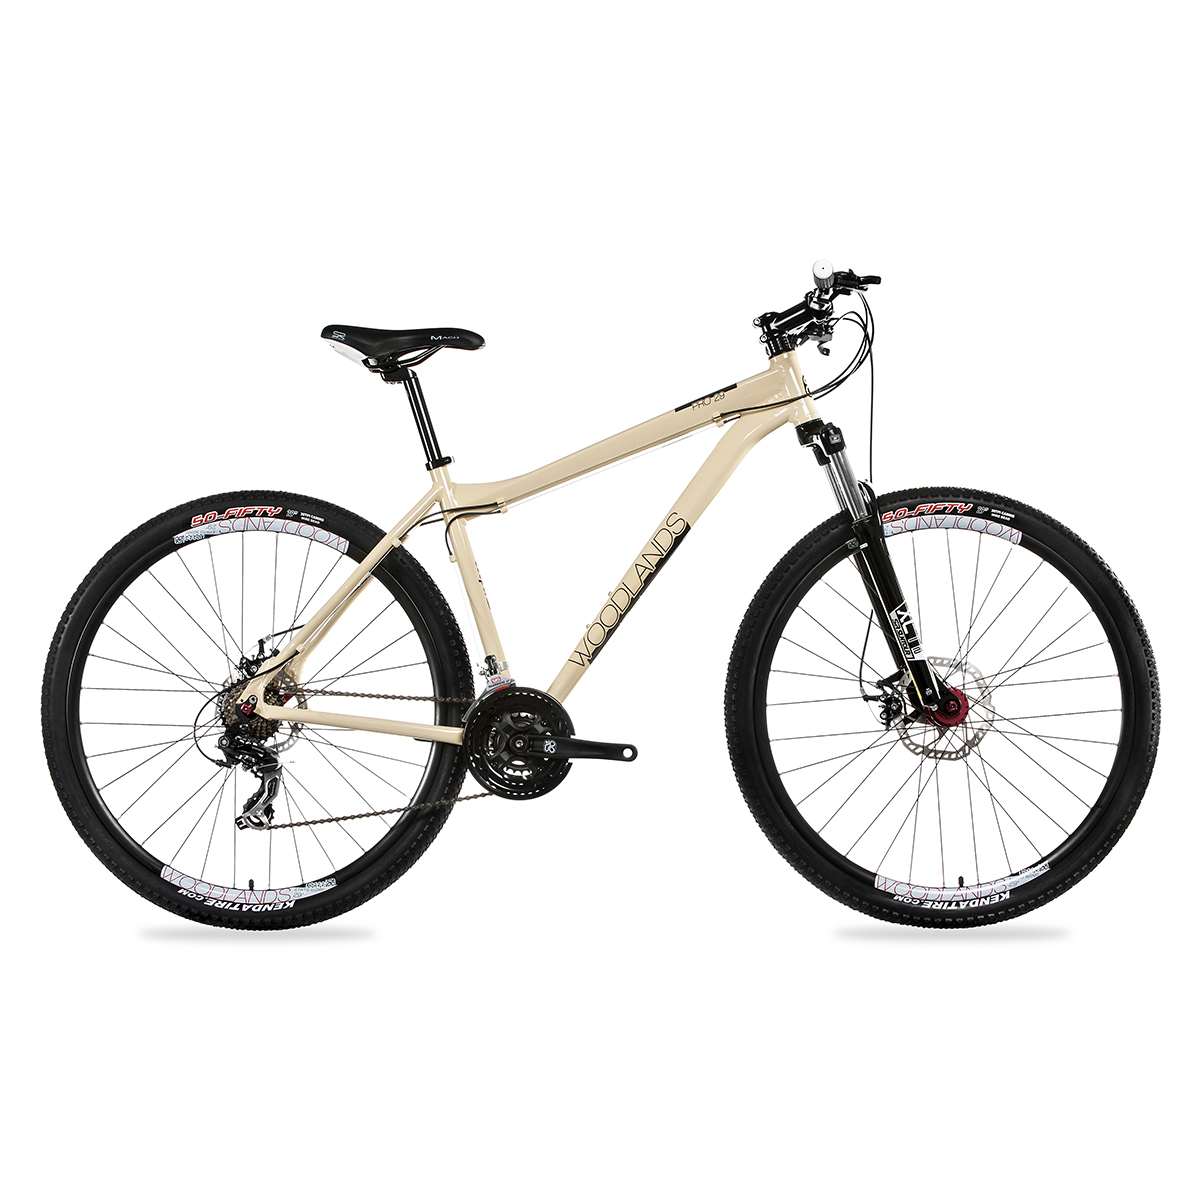 KRP WOODLANDS PRO 29 MTB 1.0 21S SMALL BARNA